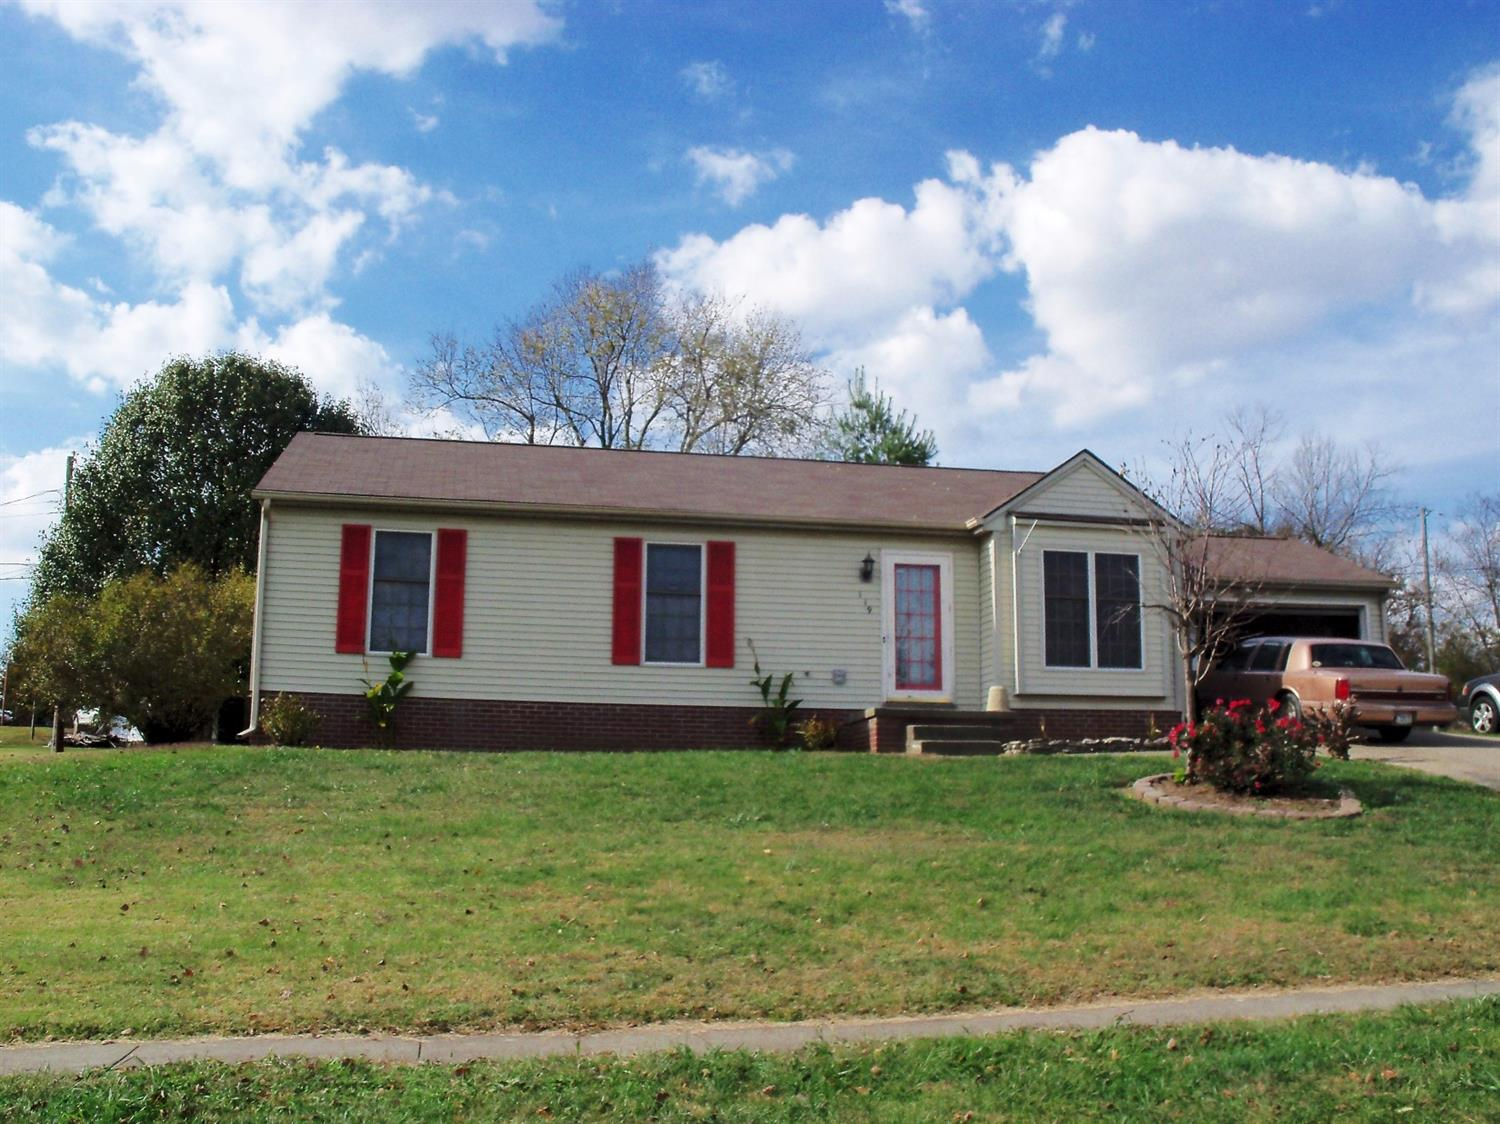 Home For Sale at 216 E Lexington Ave, Danville, KY 40422